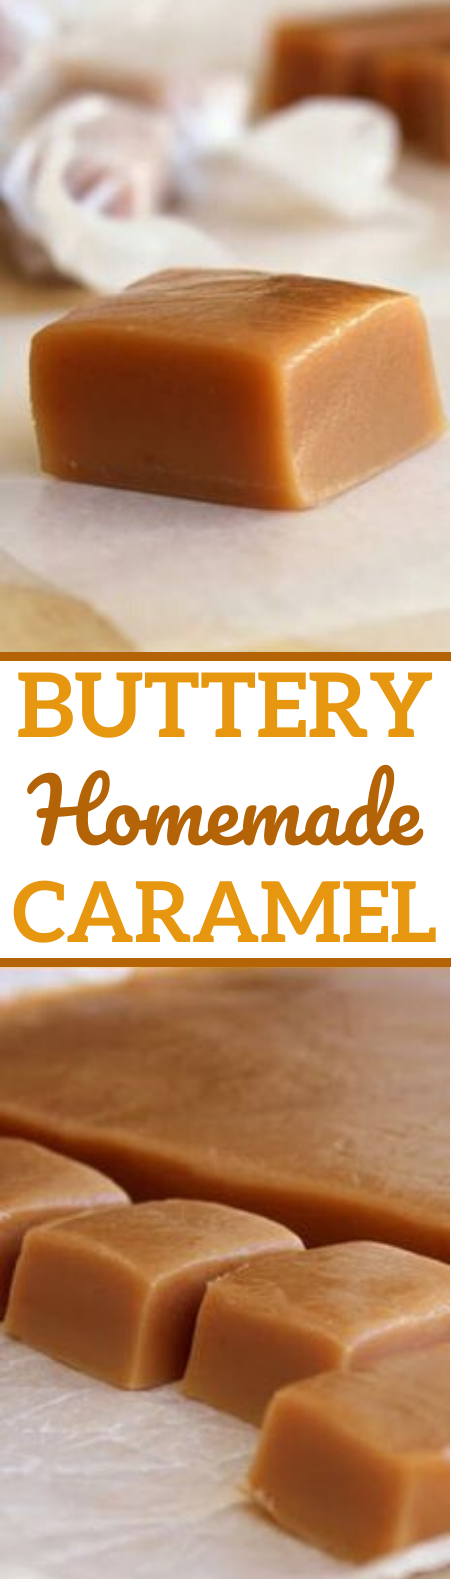 Soft, Buttery Homemade Caramels #desserts #candy #easy #recipes #caramel